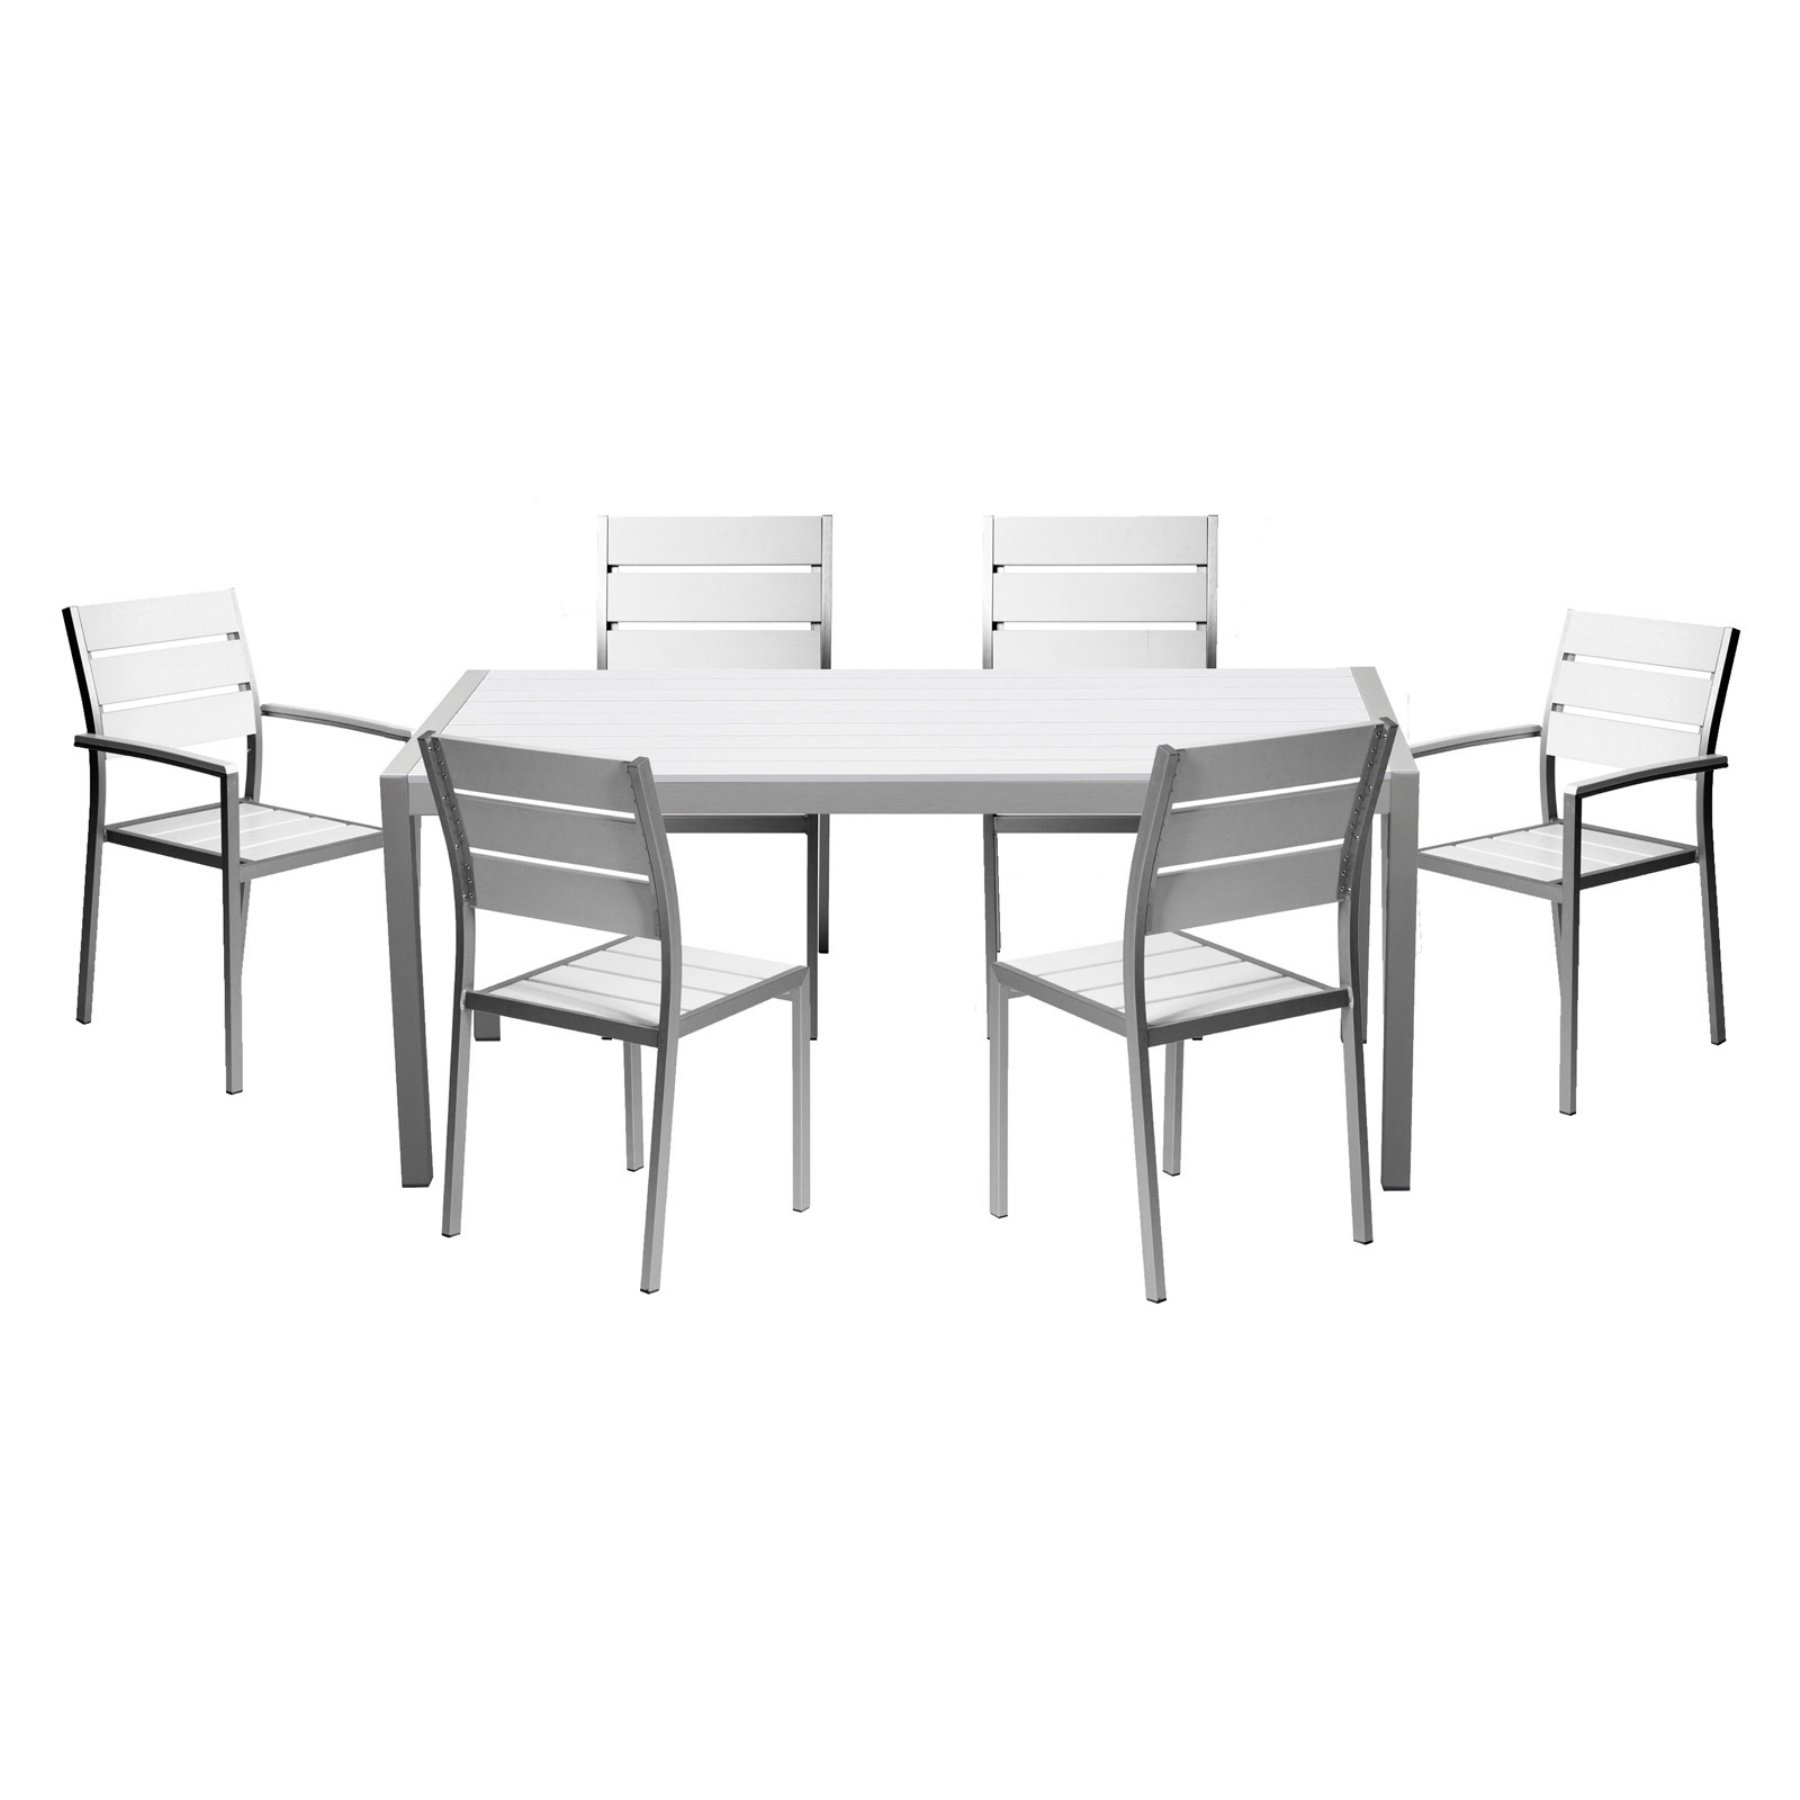 Pangea Outdoor Roy Aluminum 7 Piece Patio Dining Set In 2018 With Regard To Latest Market 7 Piece Dining Sets With Host And Side Chairs (Photo 18 of 20)